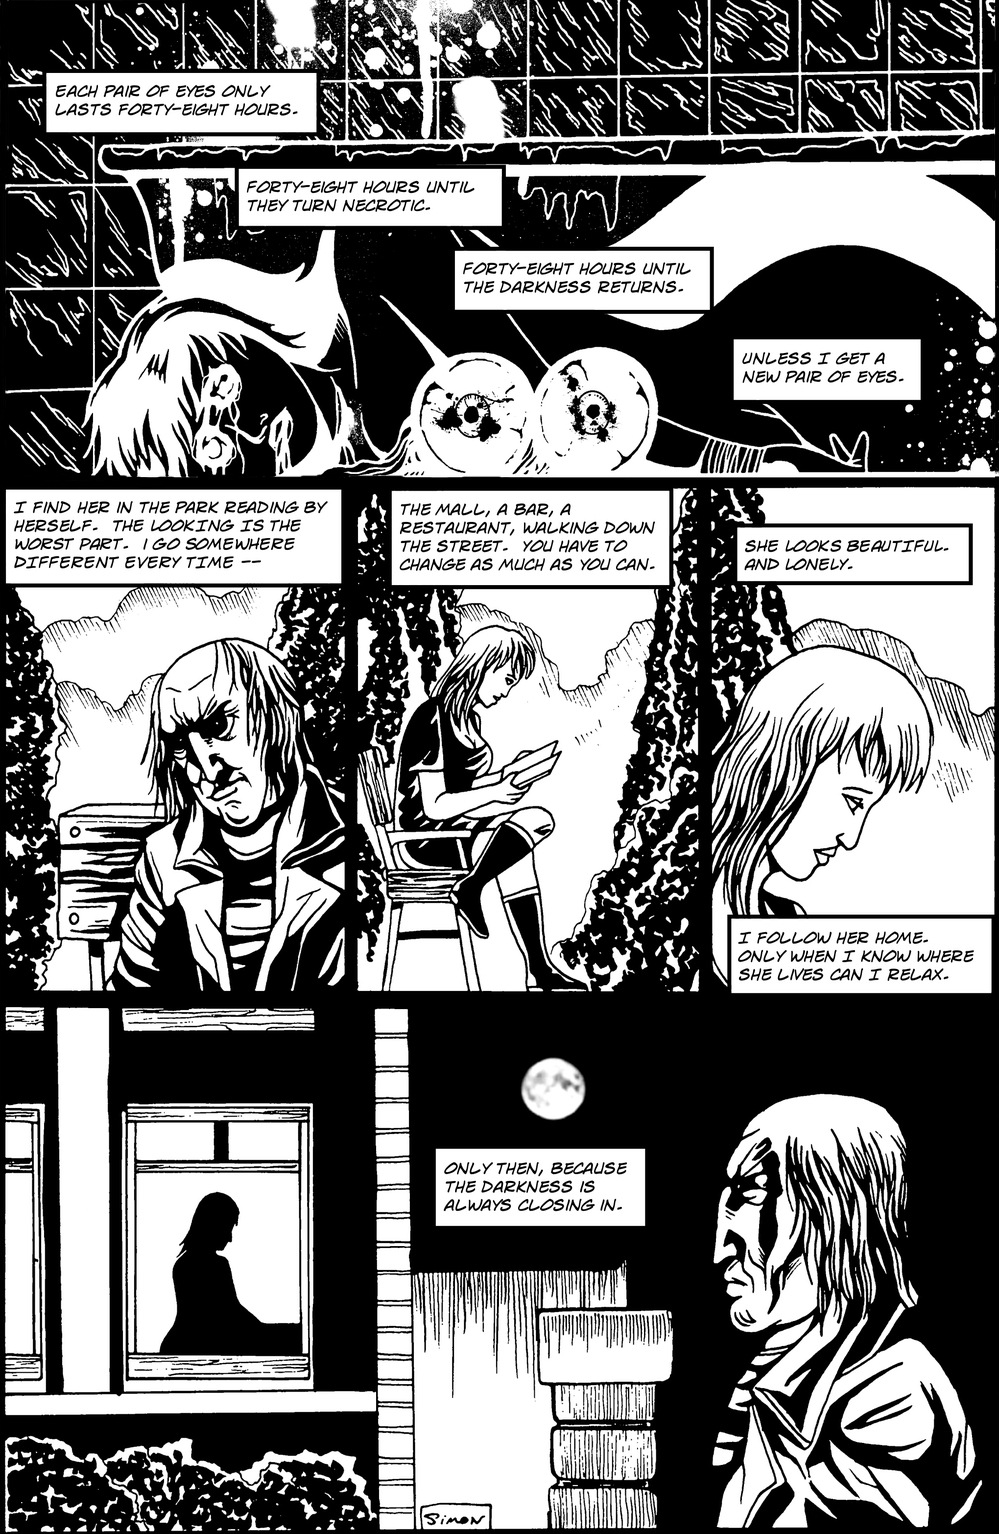 EYES page 4 - story 2 in The Book of Lies